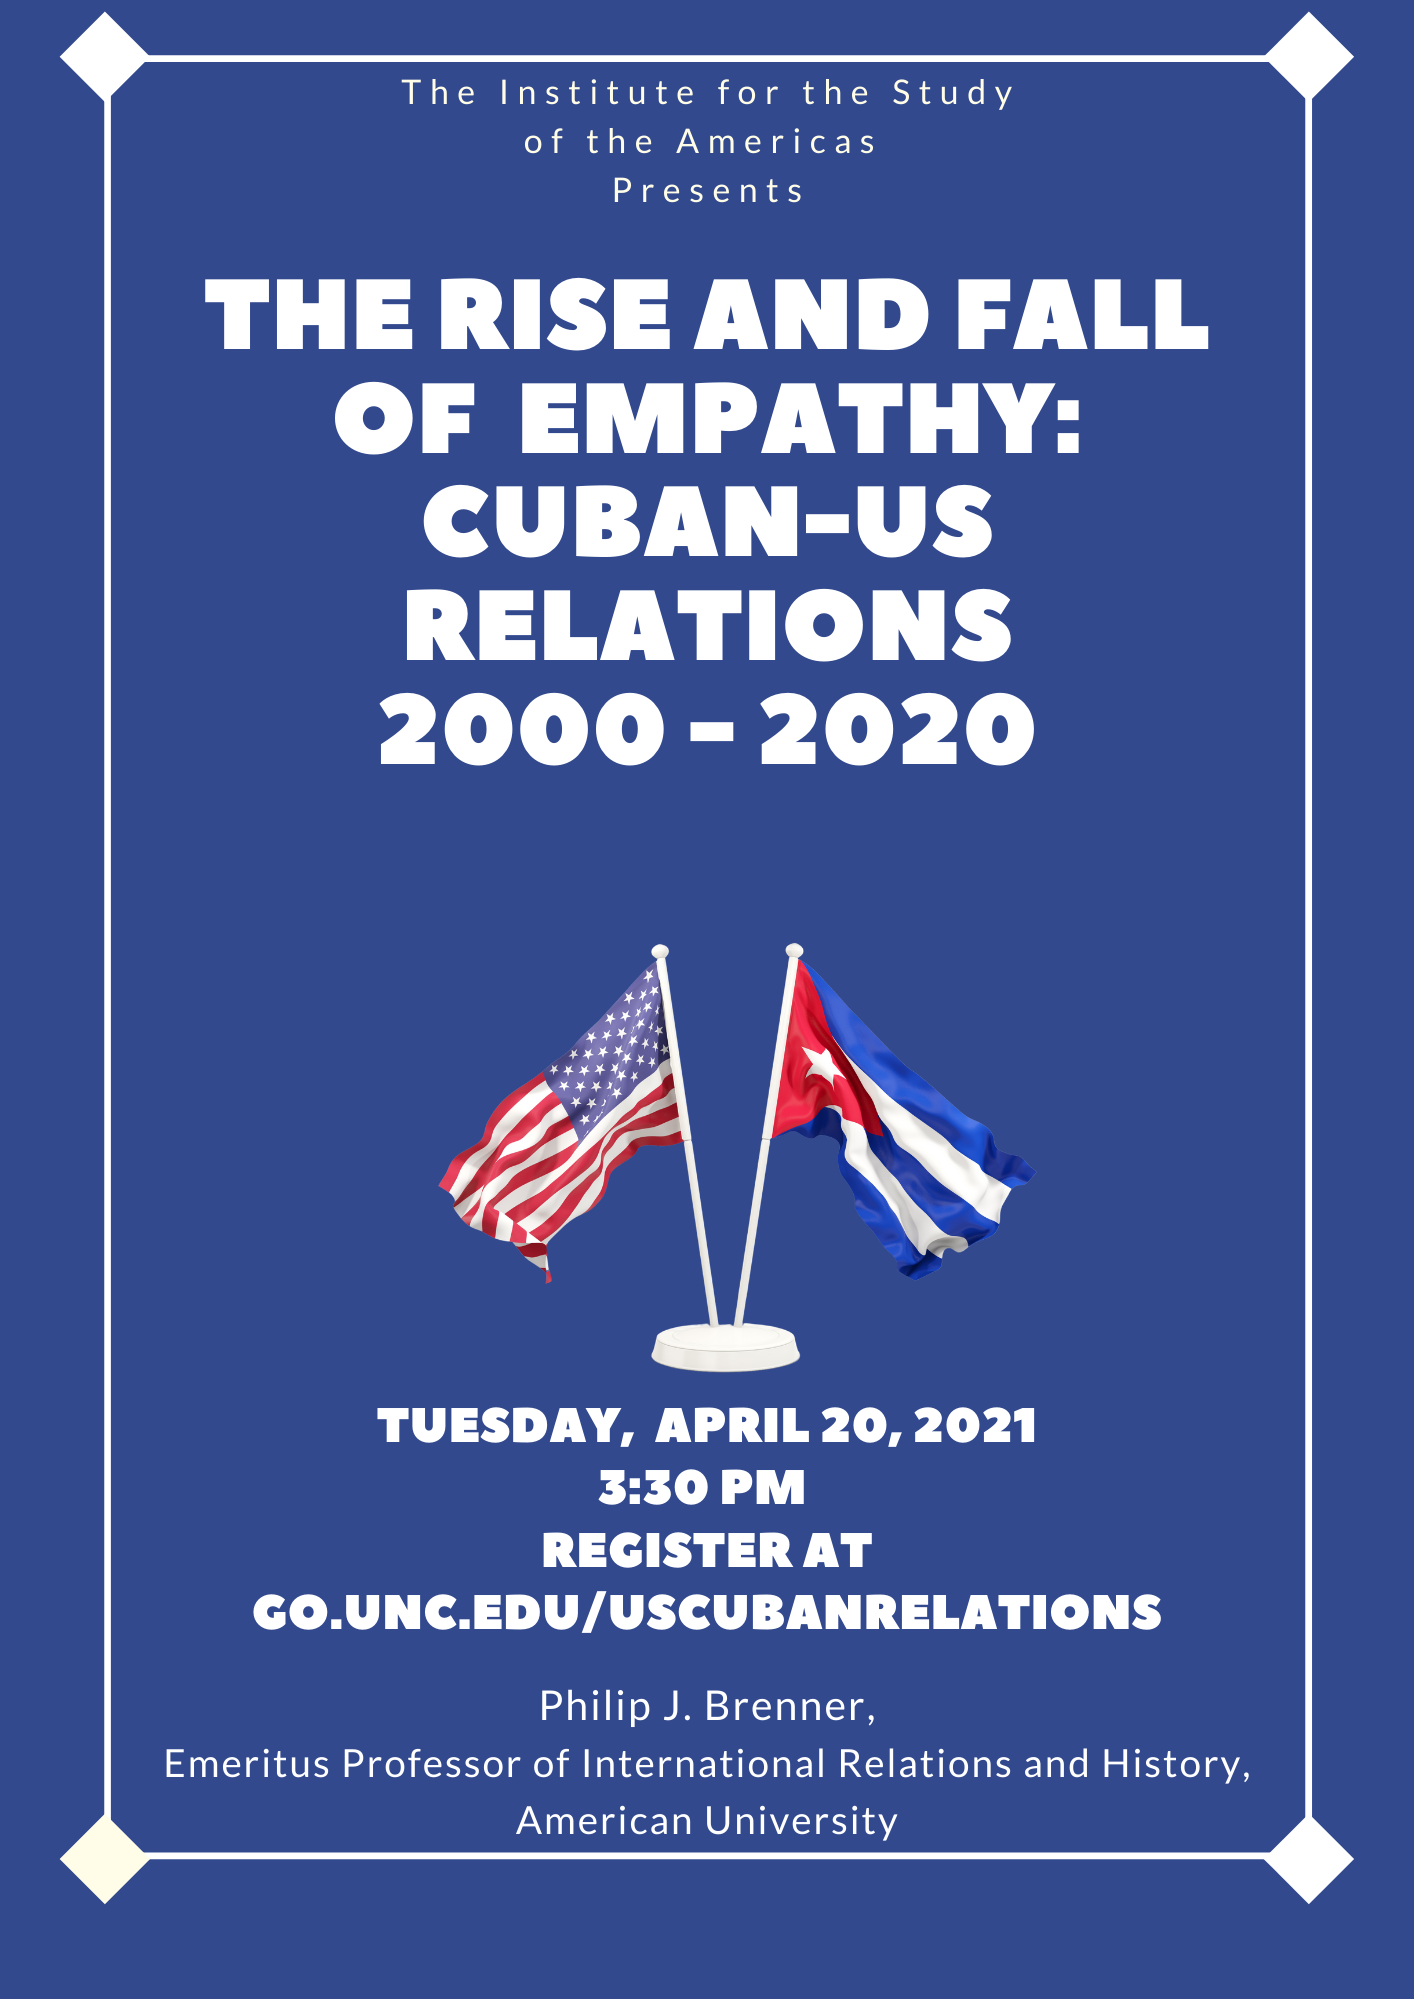 The Rise and Fall of Empathy: Cuban-US Relations 2000-2020